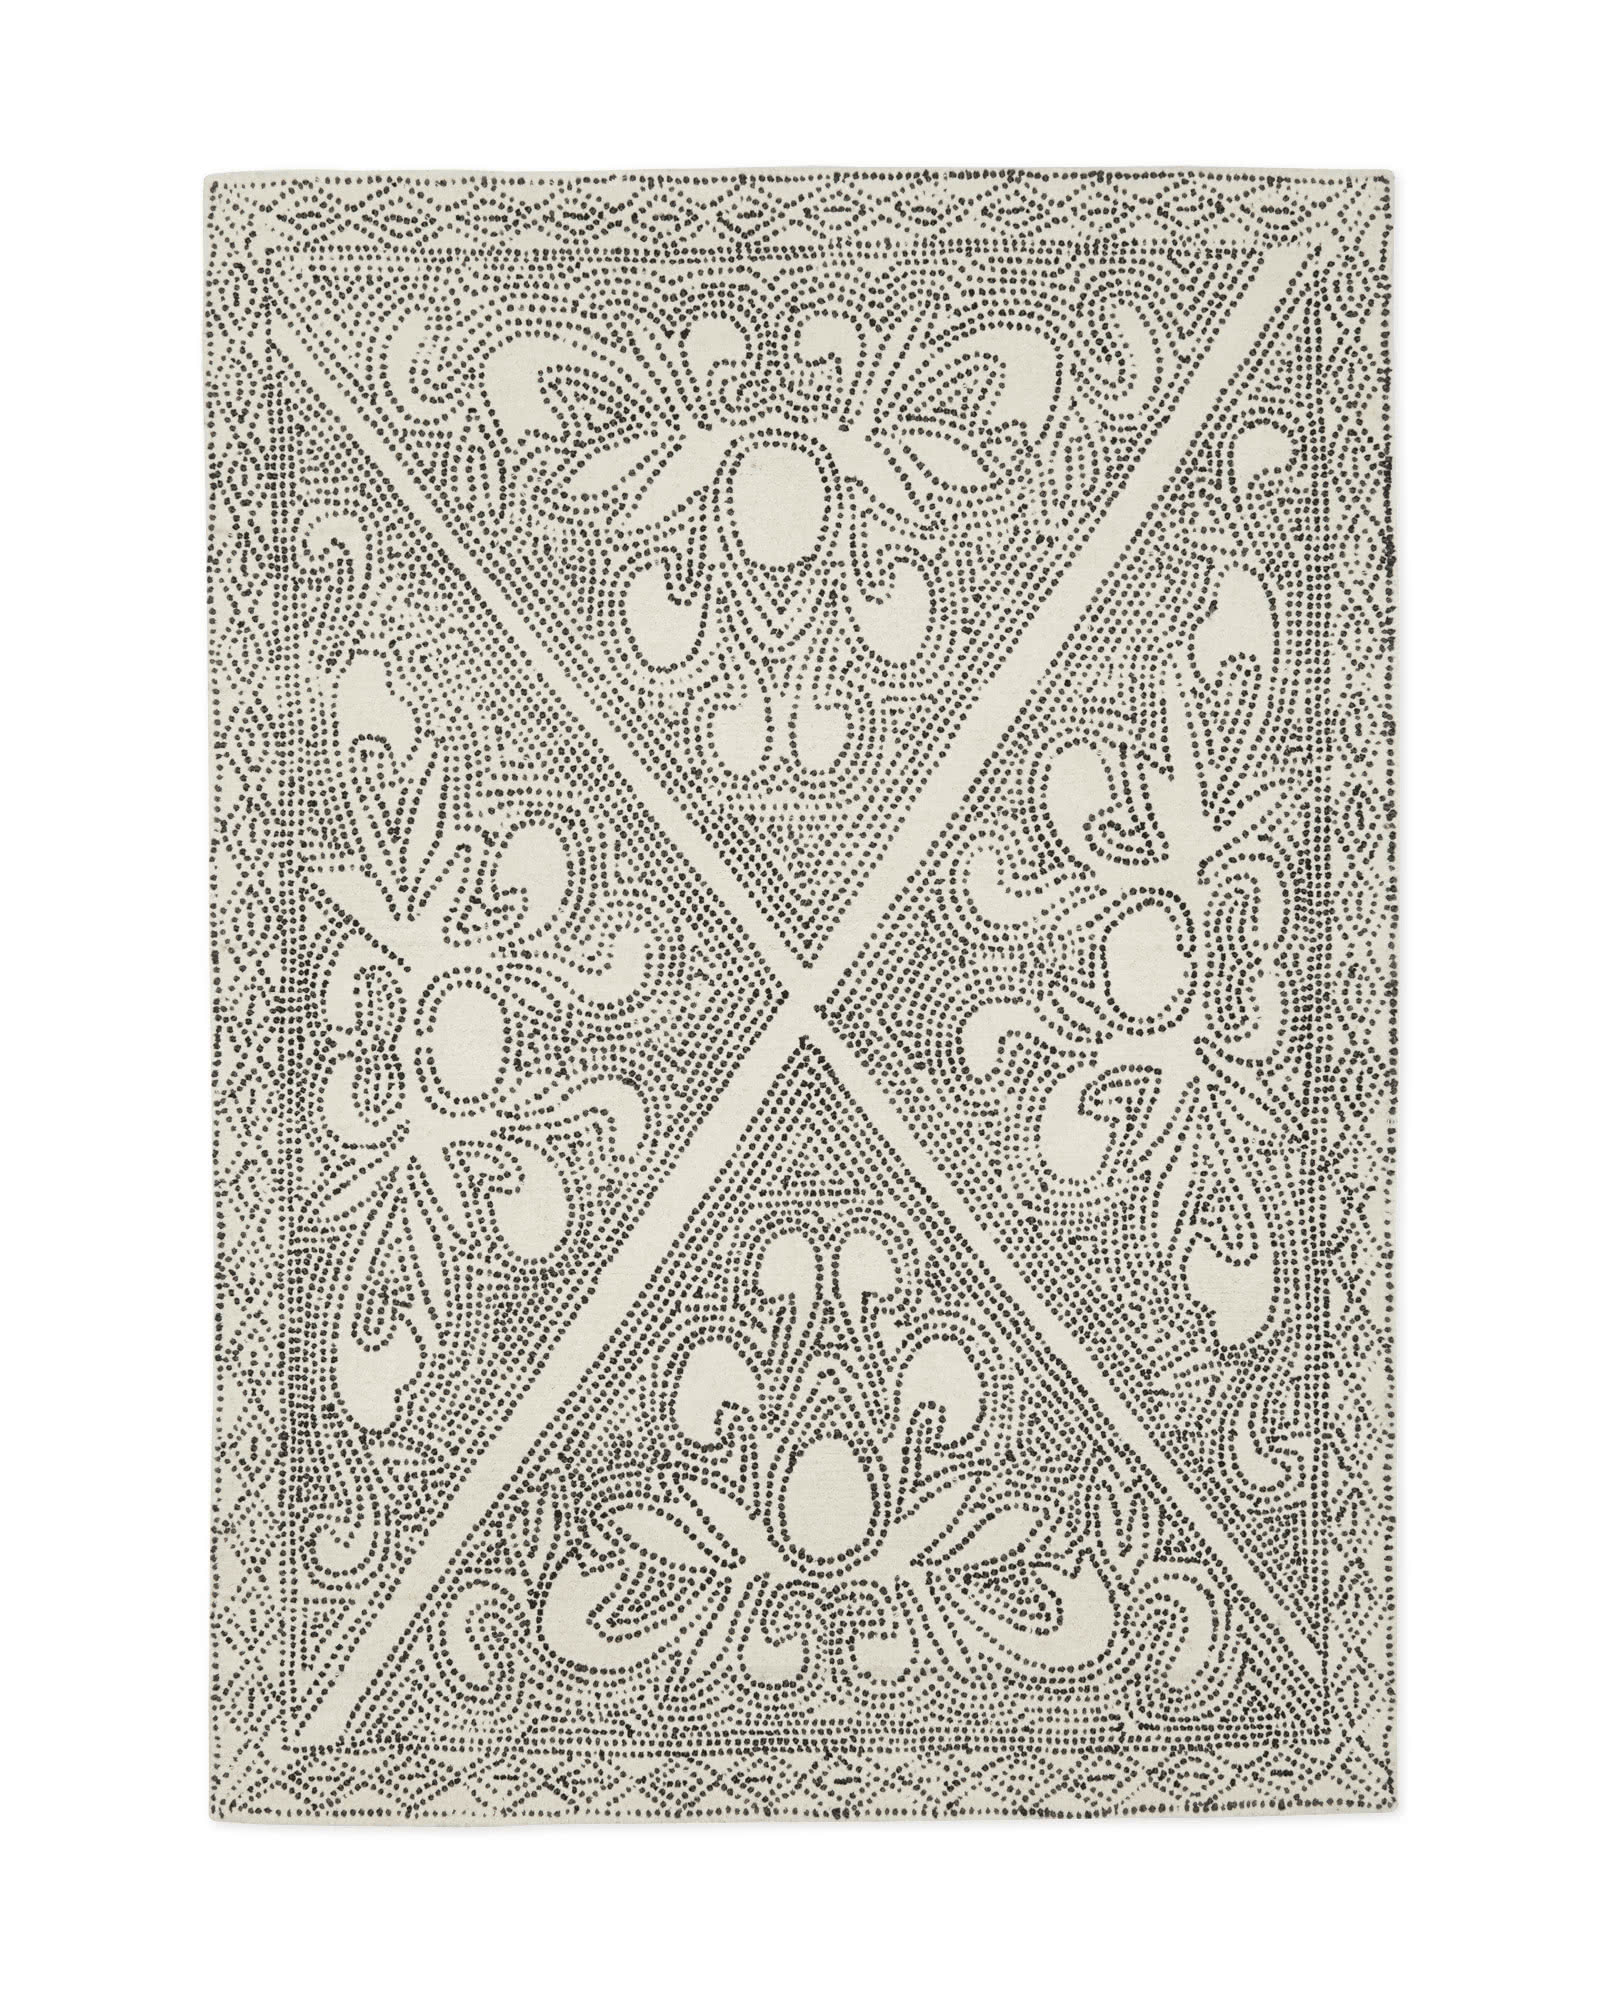 Mirabelle Rug Serena Amp Lily